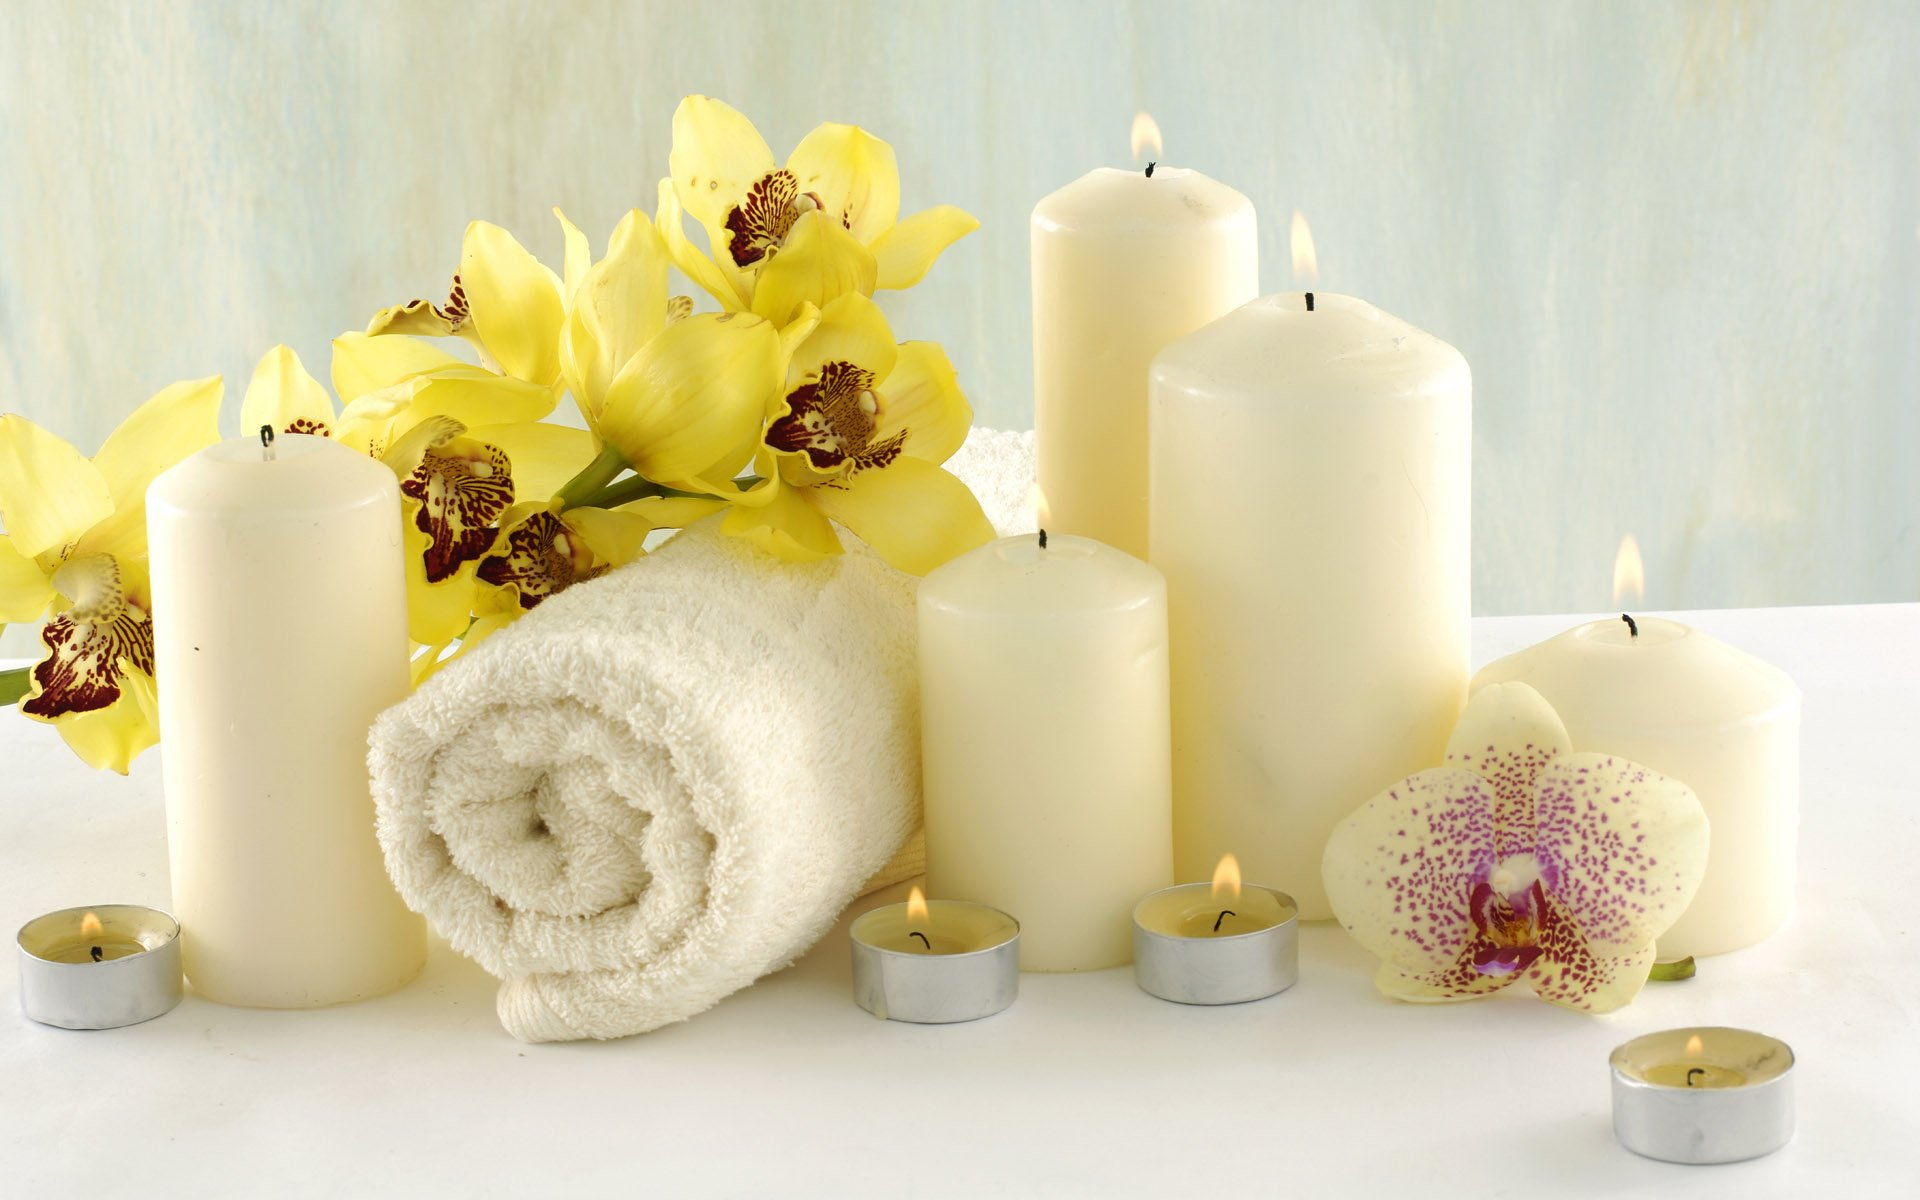 Spa treatments Wallpapers   HD Wallpapers 82286 1920x1200